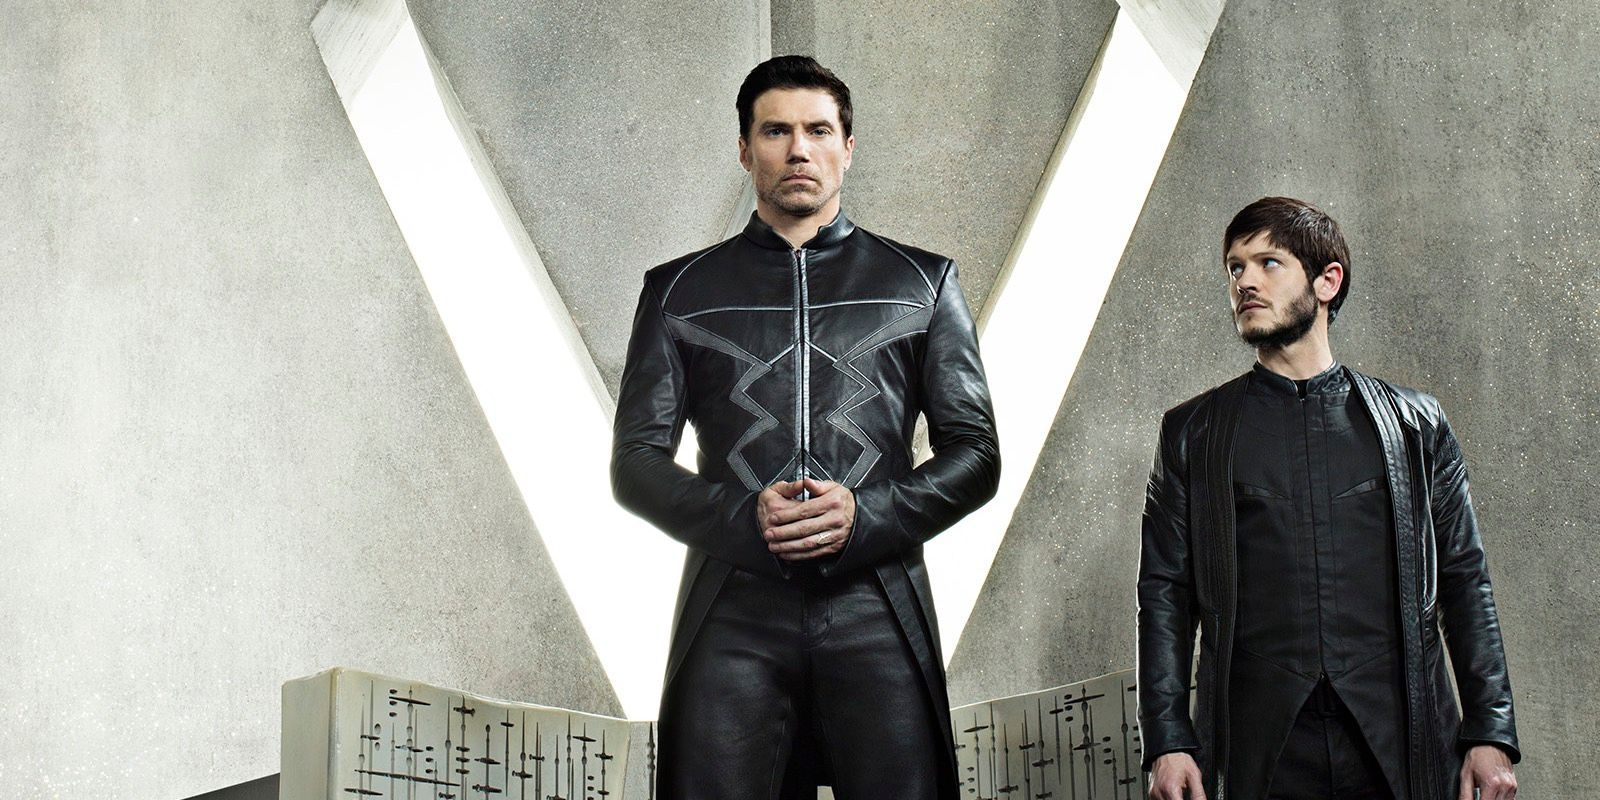 ABC's Inhumans Star Is OK With A Proper MCU Reboot | Screen Rant